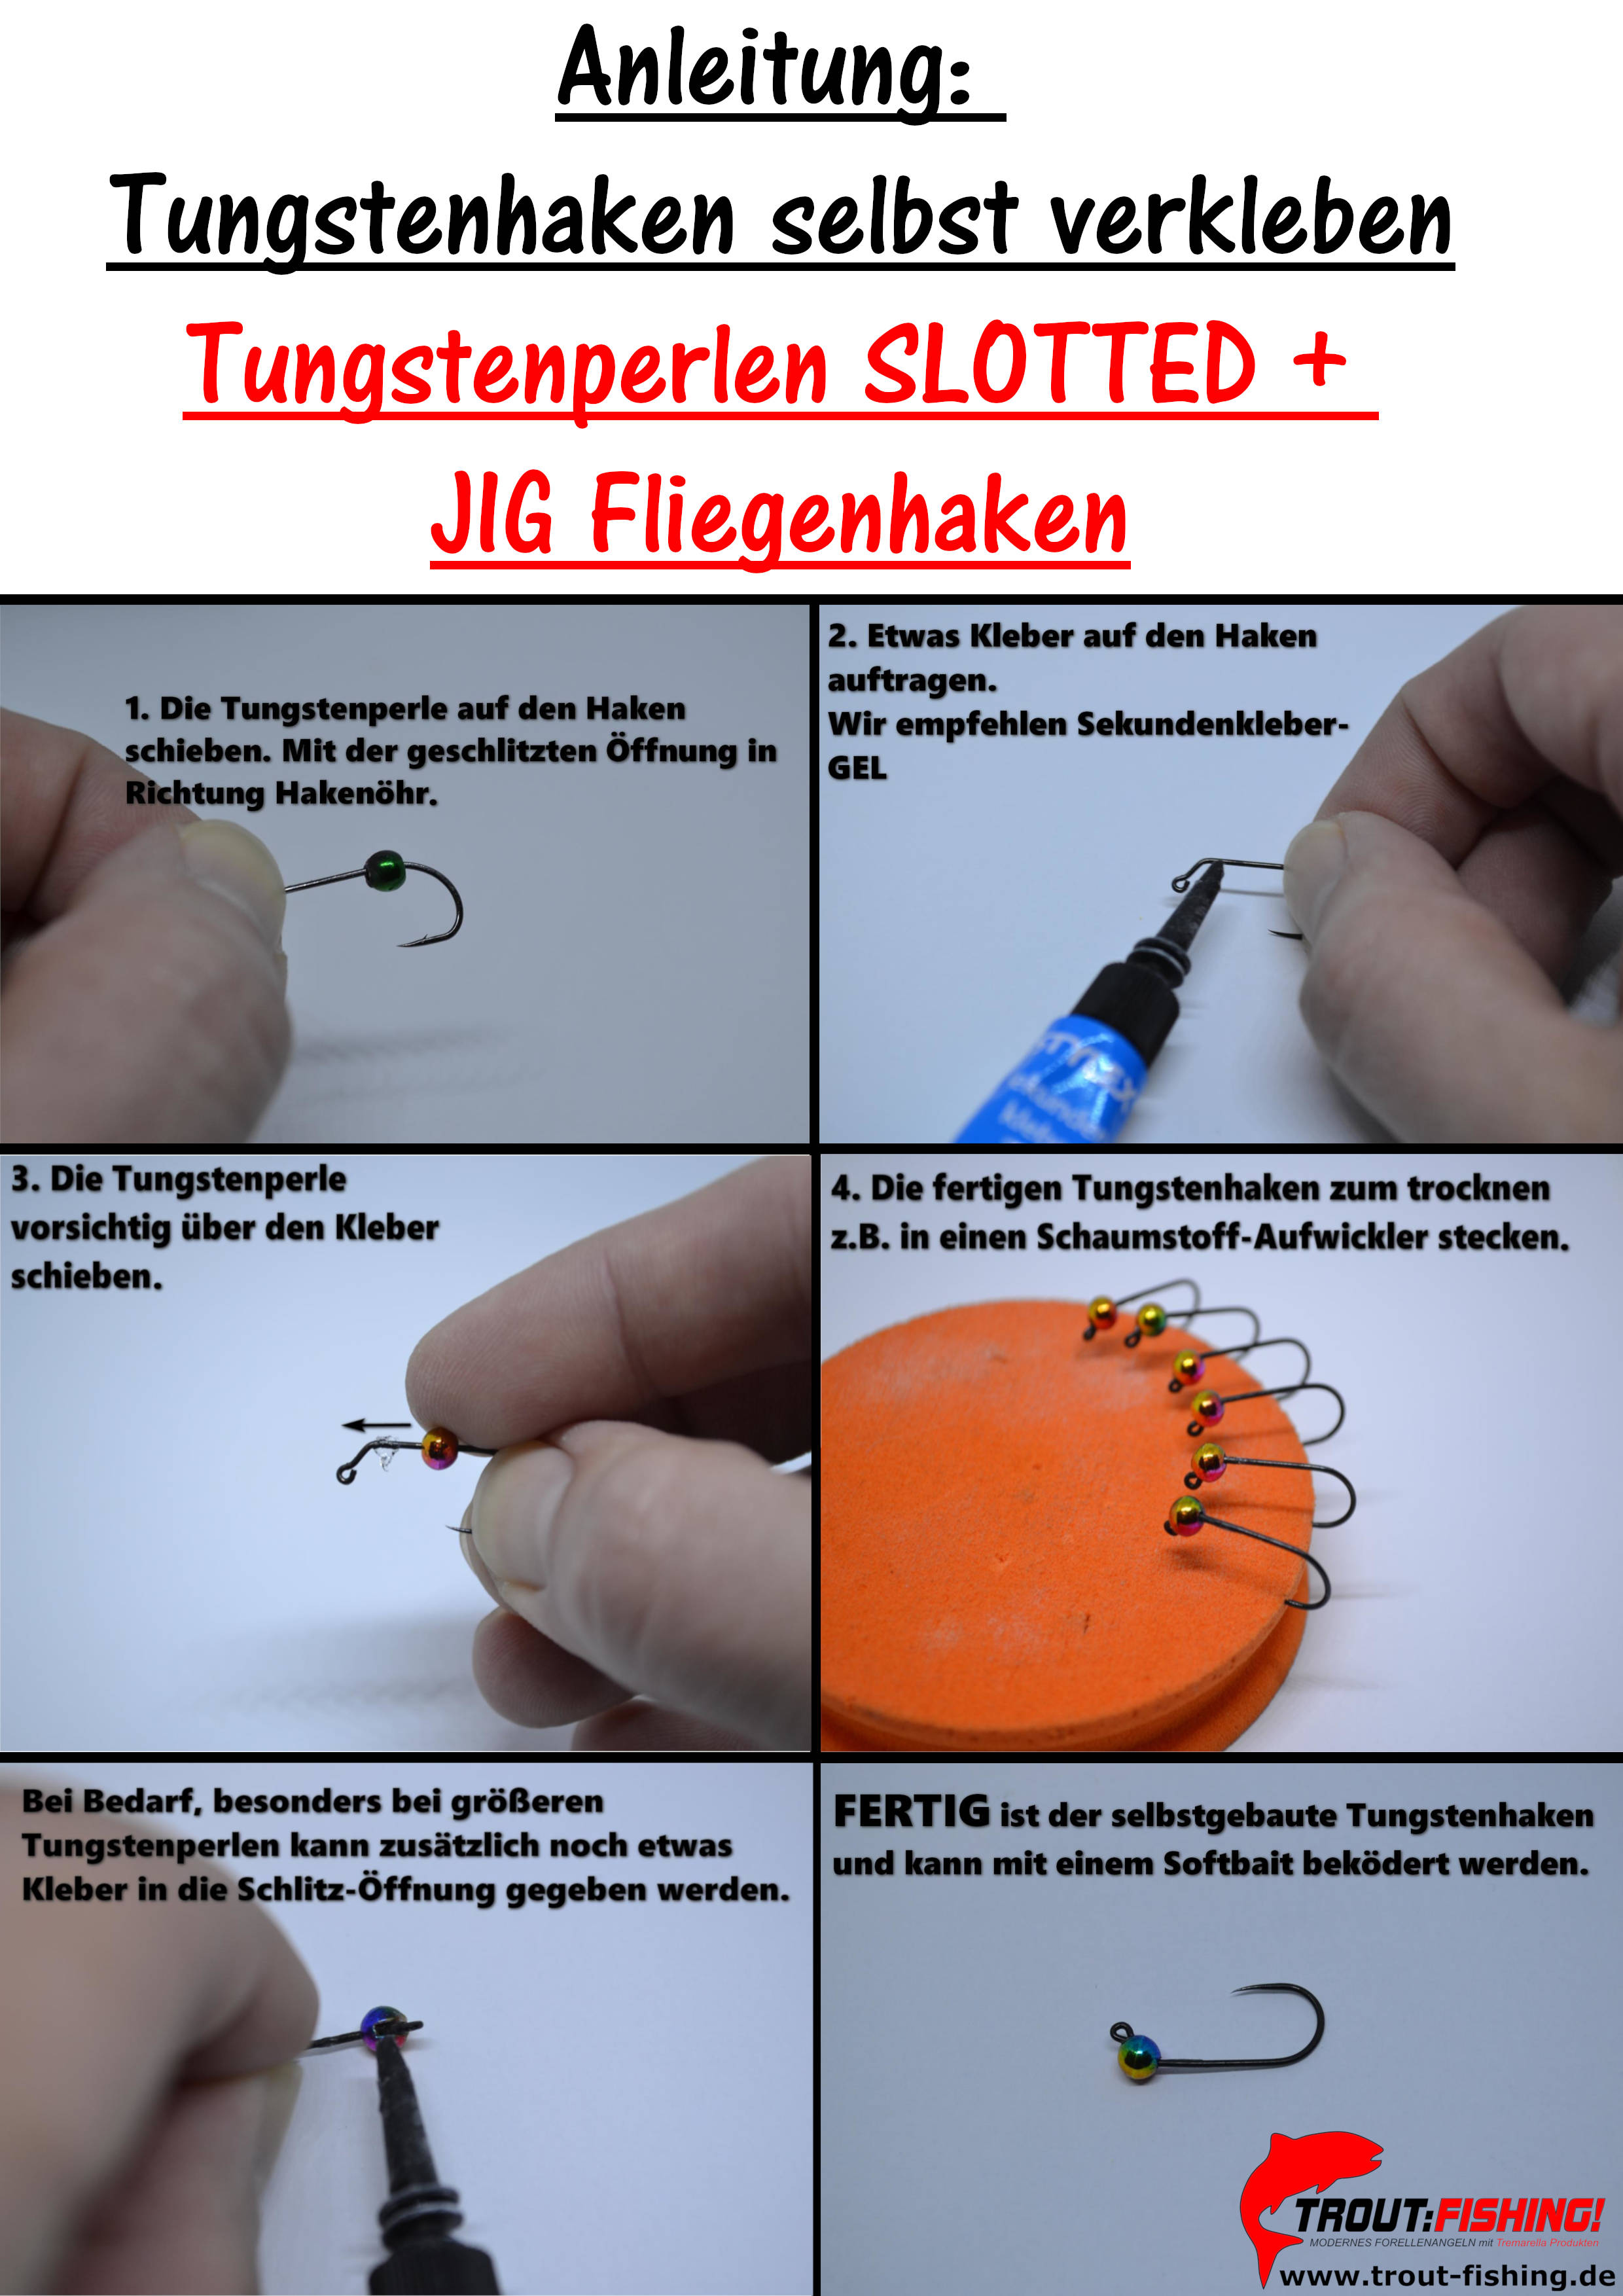 anleitung tungstenhaken slotted kleben area ultralight gummiköder spoon copyright daniels angelshop trout fishing d